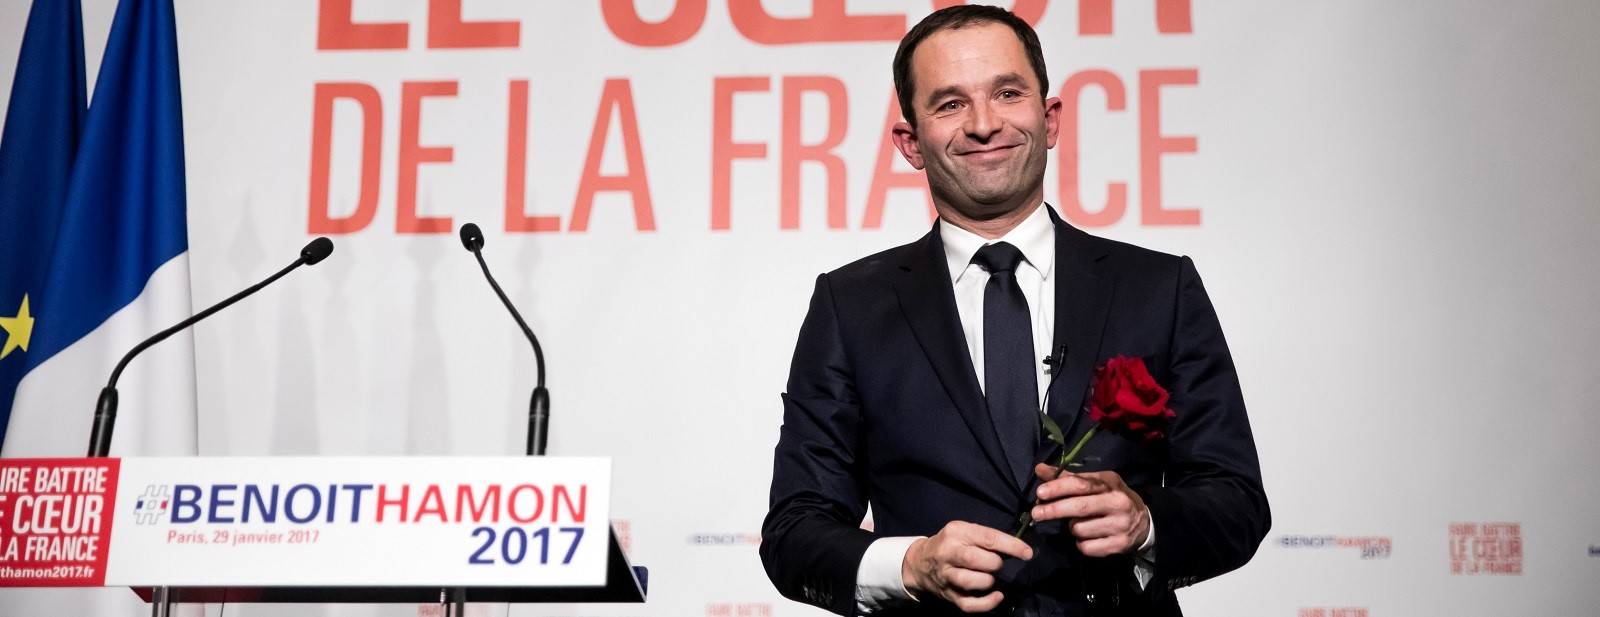 Socialist party candidate for the 2017 French presidential election Benoit Hamon (Photo by Vincent Isore/IP3/Getty Images)